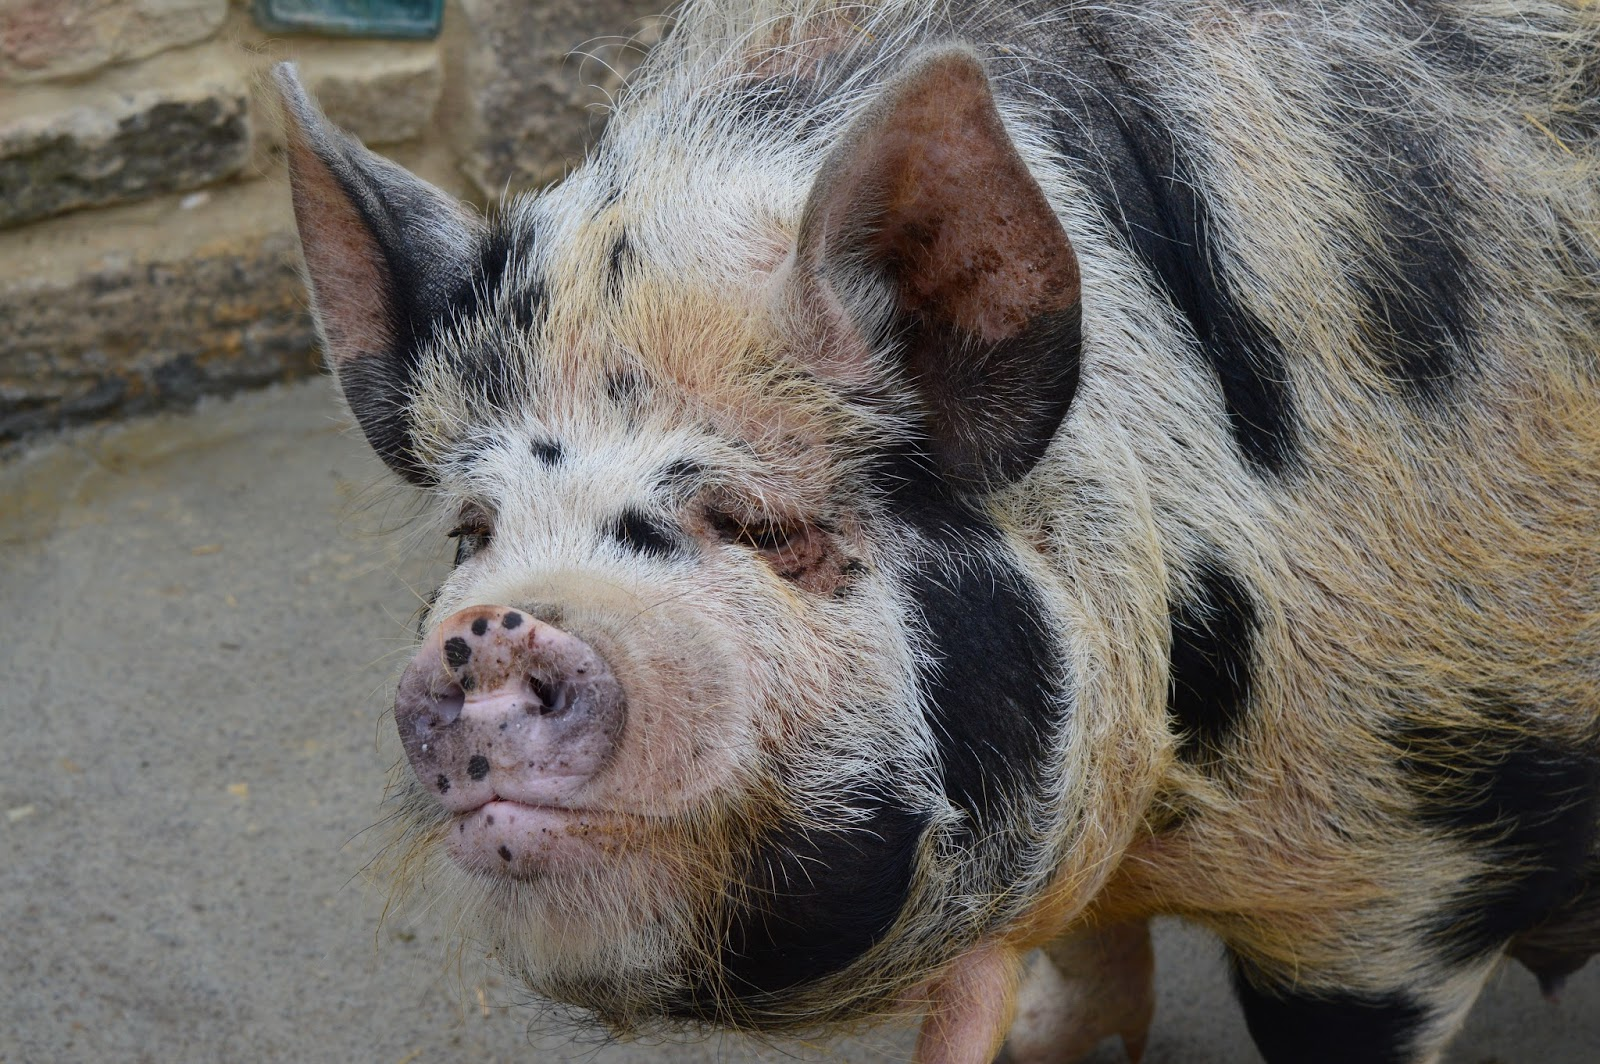 Overnight Stay at South Causey Inn | County Durham - Animals Pigs